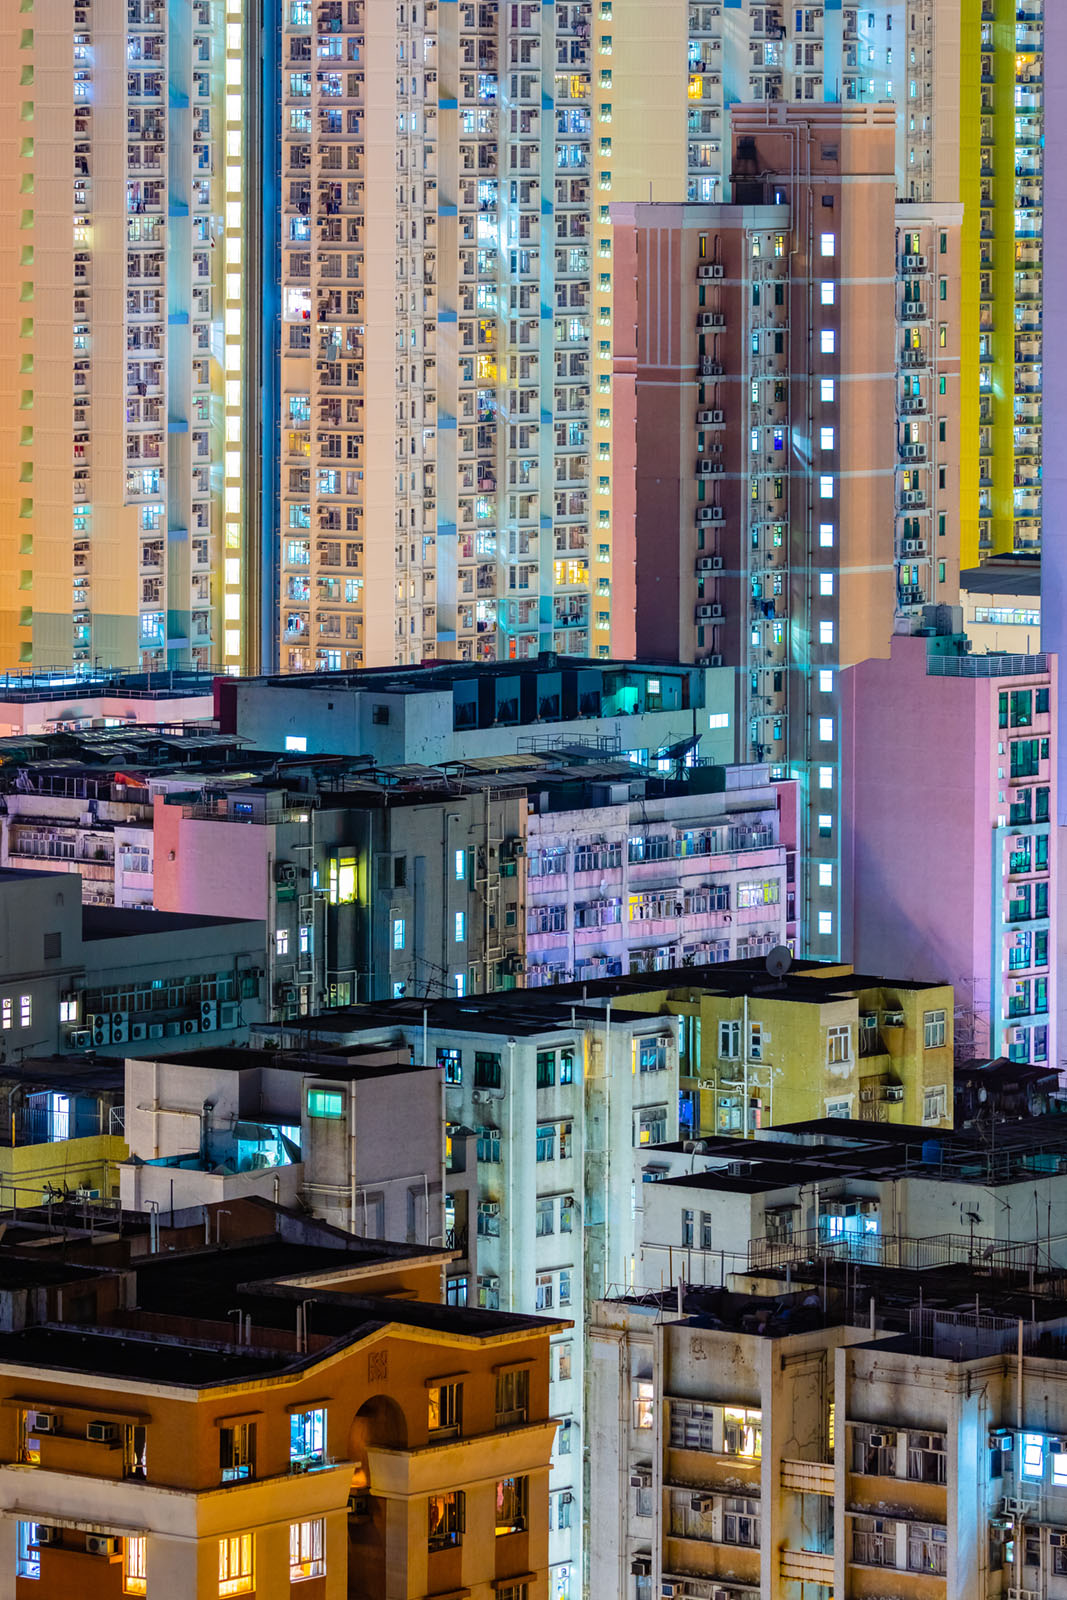 2018, Hong Kong, abstract, aerial, apartments, block tower, canon, china, cities, city, cityscape, complex, drone, estates, highrise...